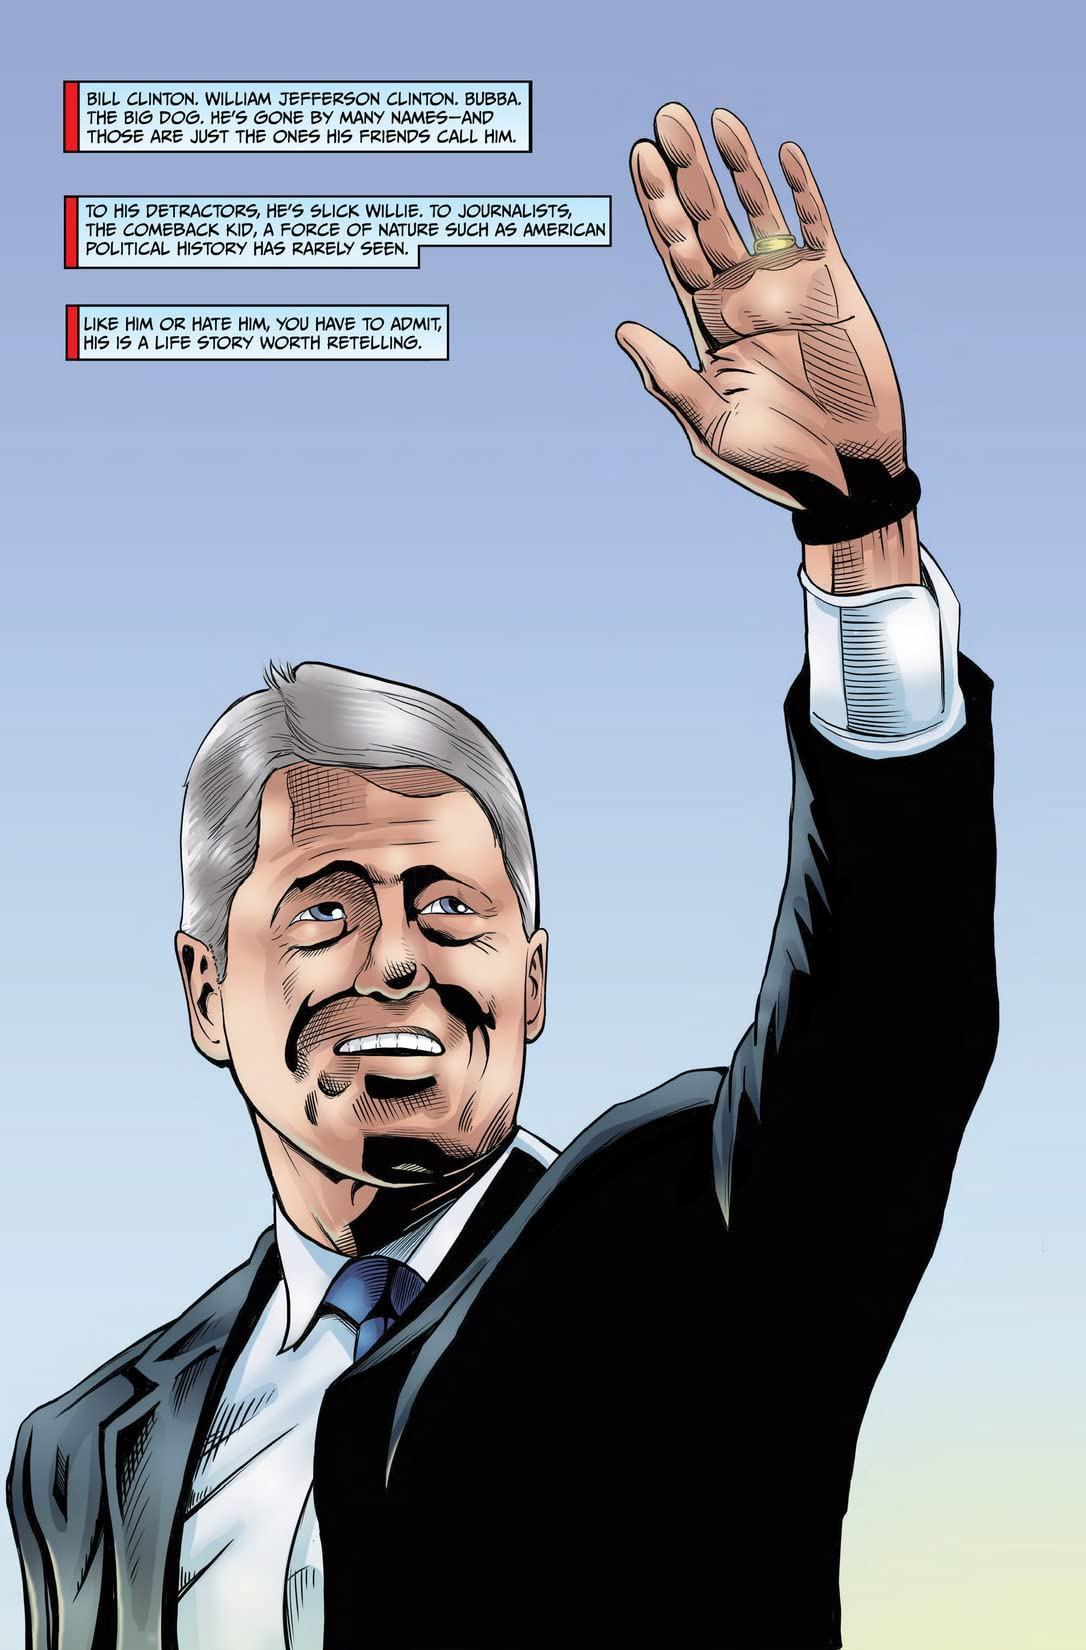 Political Power: Bill Clinton